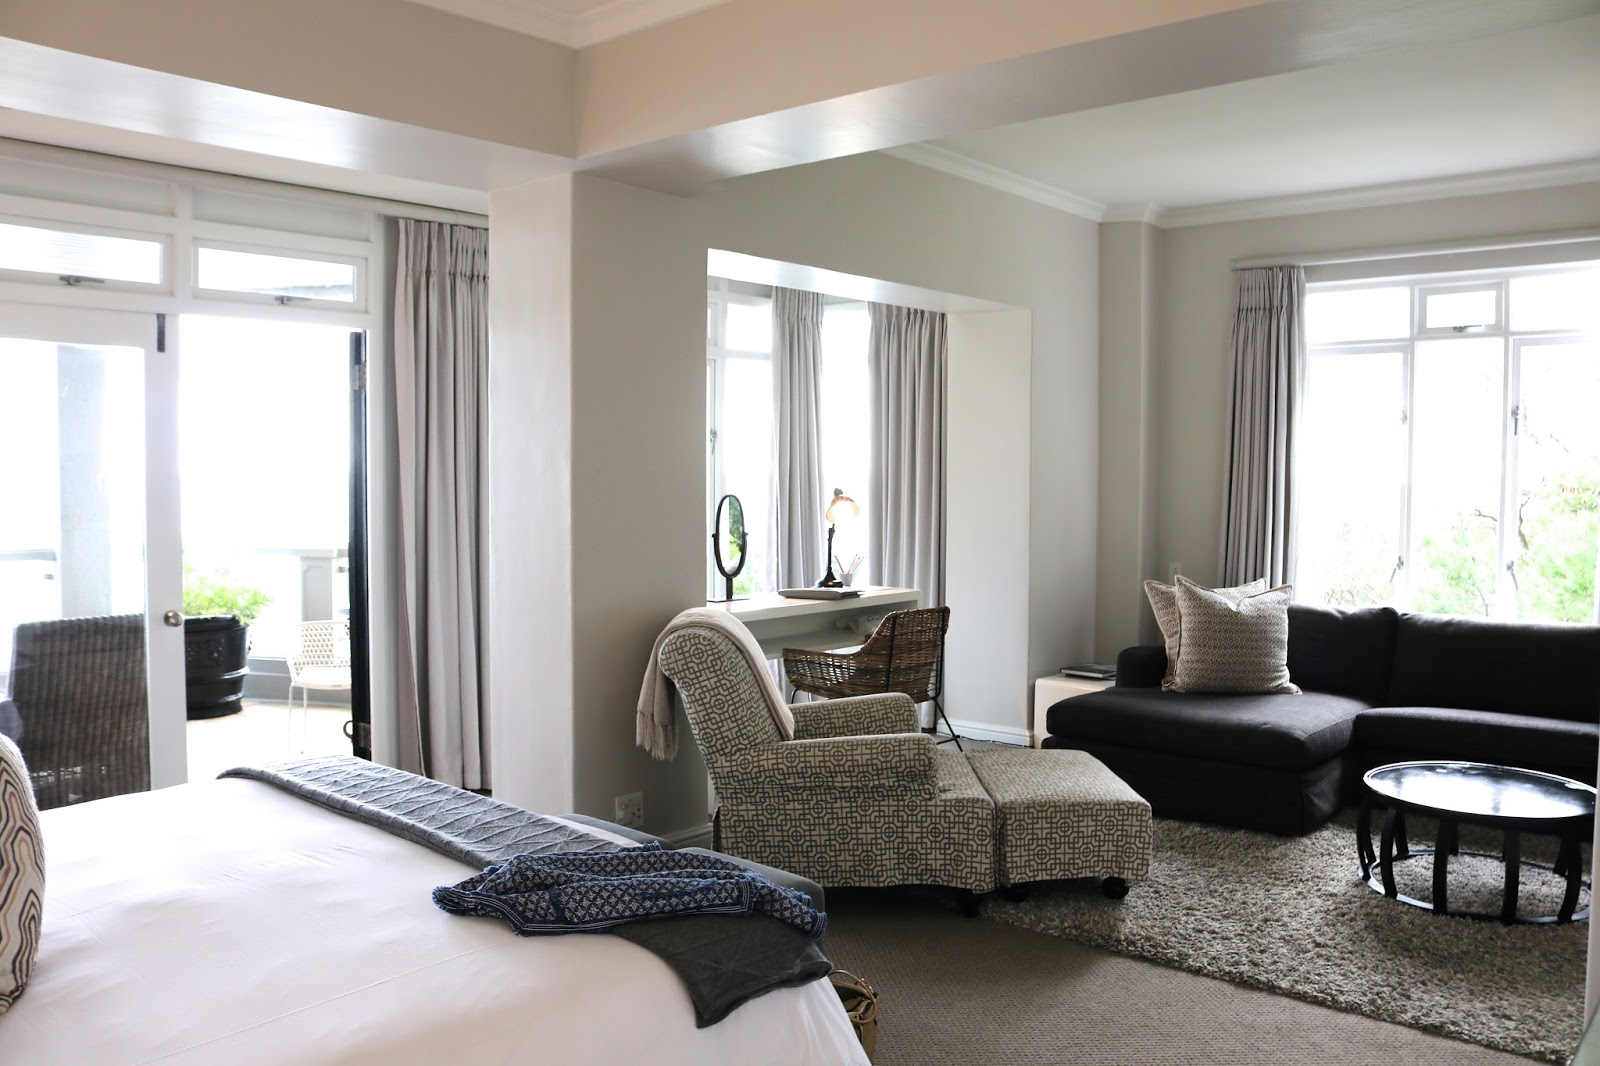 Deluxe Suite, Cape View Clifton, Cape Town, South Africa